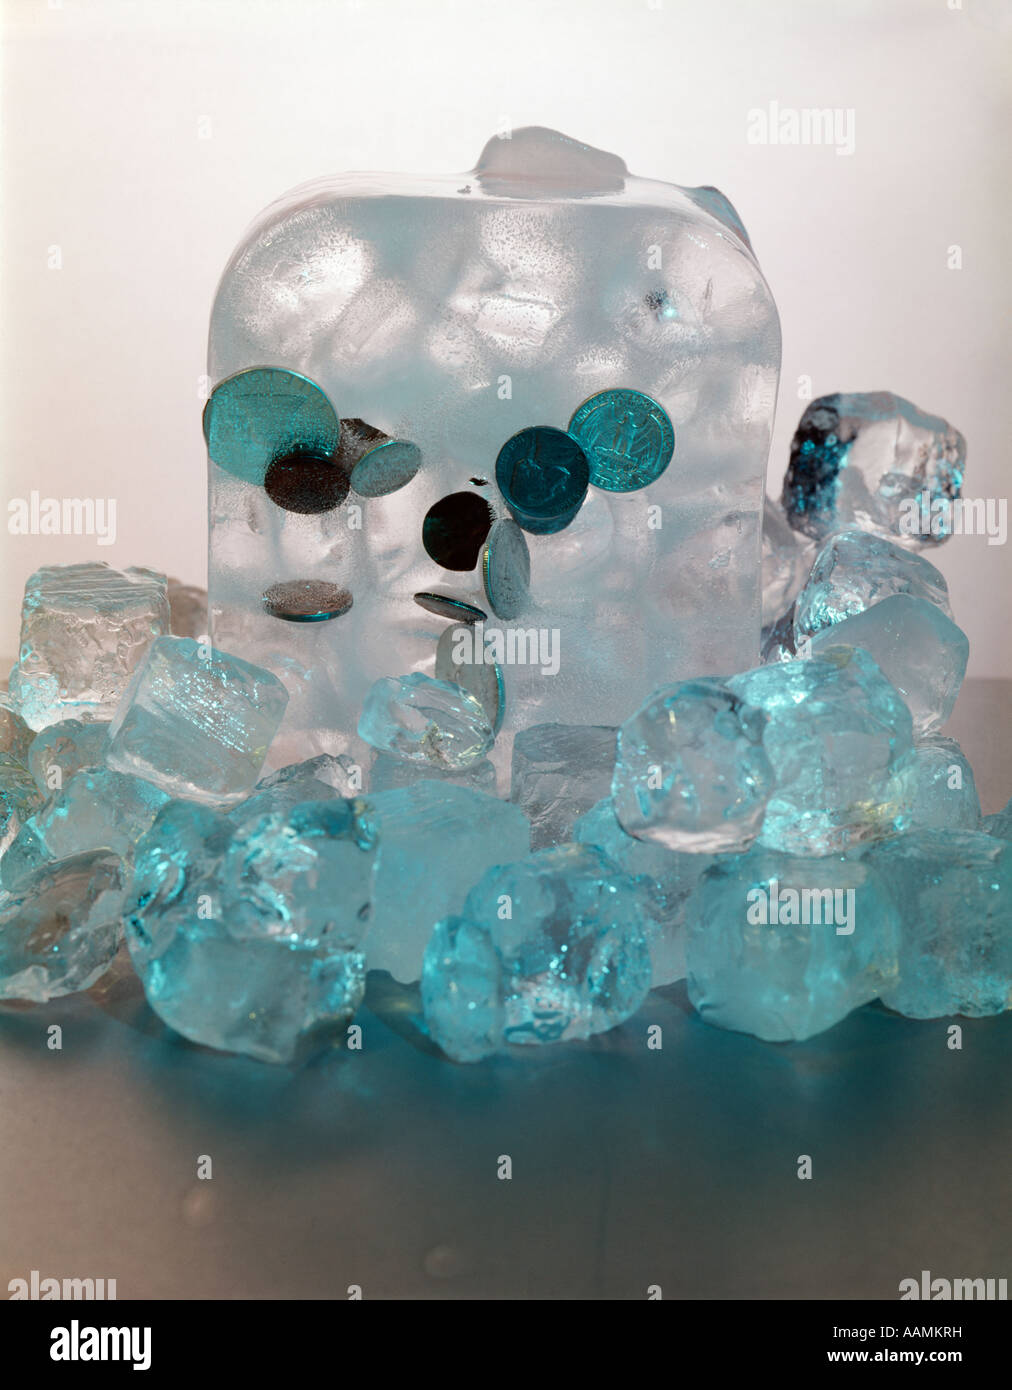 BLOCK OF ICE WITH COINS FROZEN INSIDE IMBEDDED COLD CASH FROZEN ASSETS FINANCE ICE CUBES FREEZE ACCOUNTS RETRO VINTAGE - Stock Image